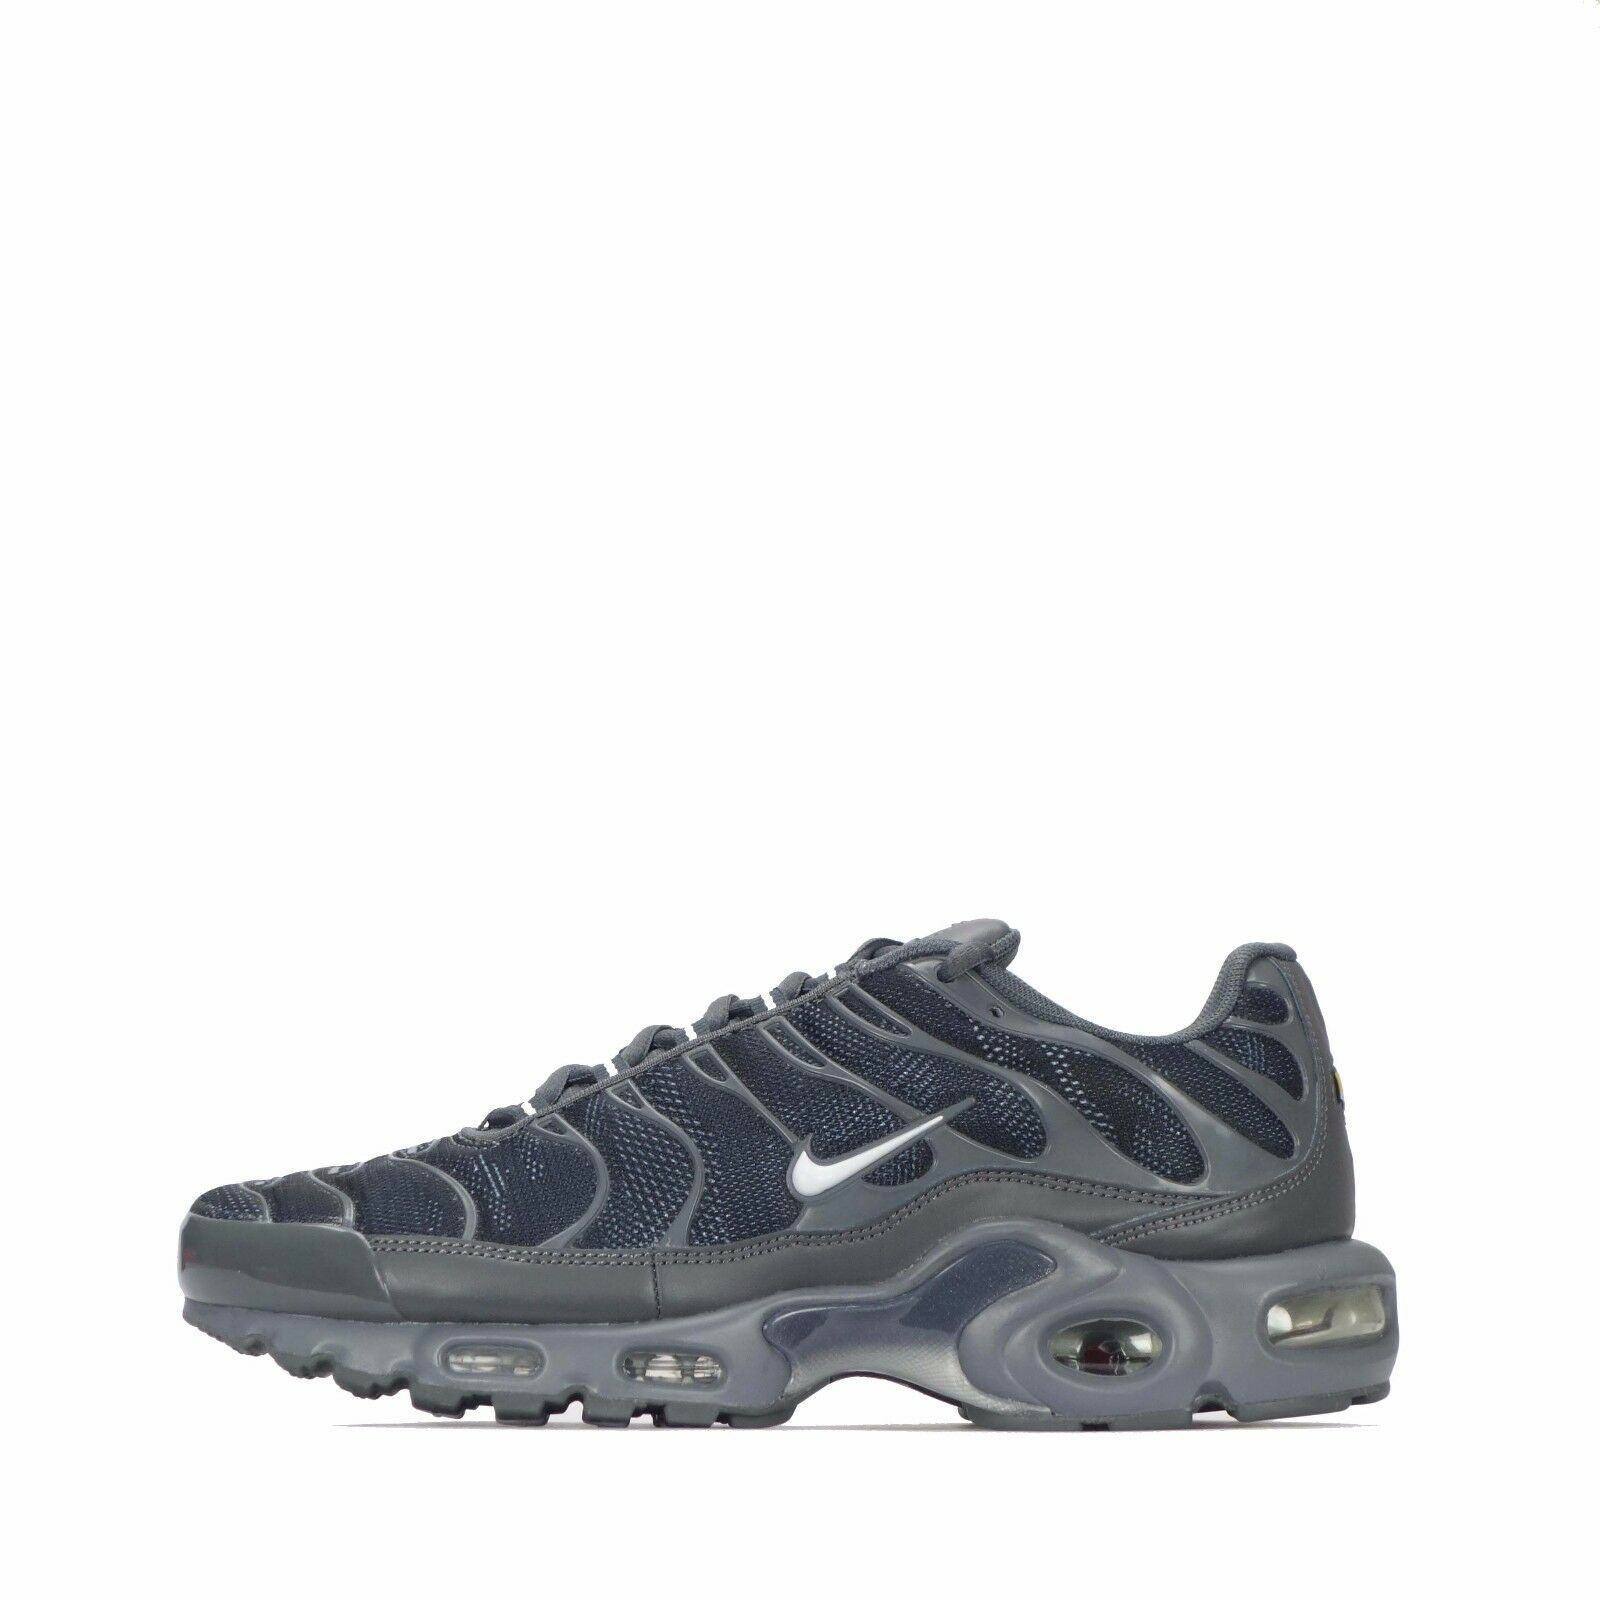 Nike Air Max Plus GPX TN Tuned Hommes Chaussures in Dark Gris / blanc  RRP 139.99